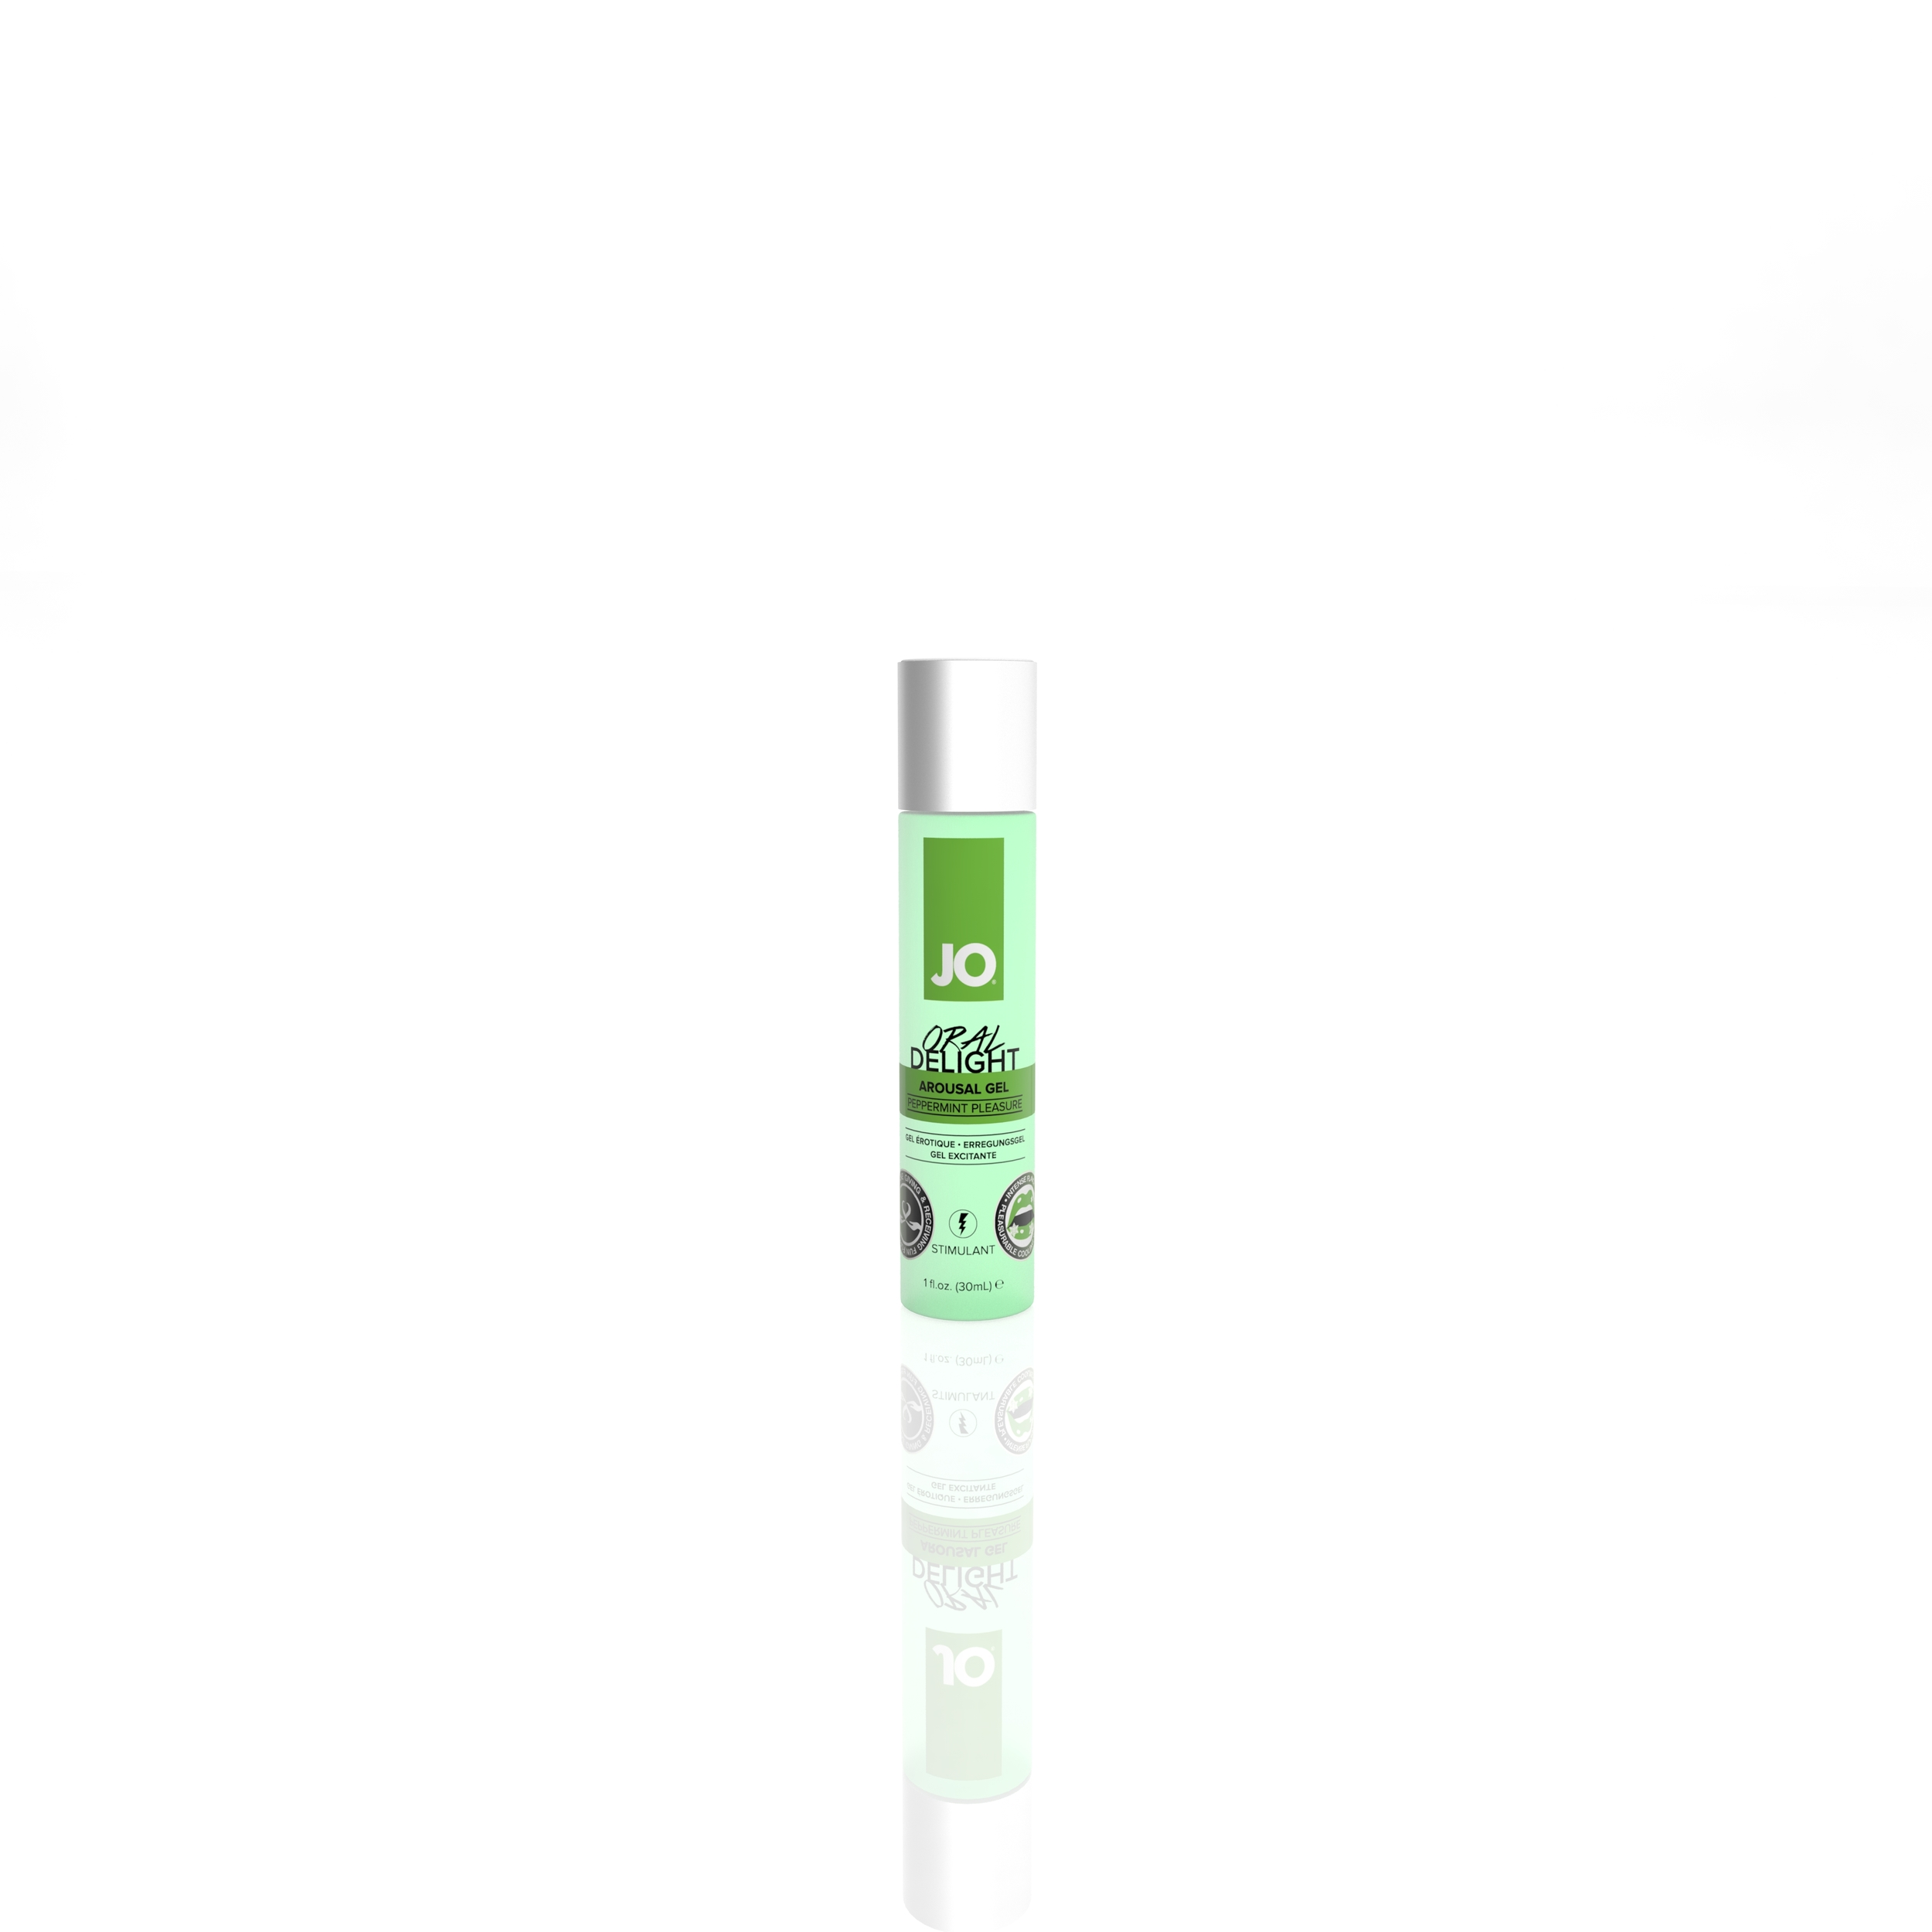 40482 - JO ORAL DELIGHT - PEPPERMINT PLEASURE - 1fl.oz 30mL Bottle.jpg